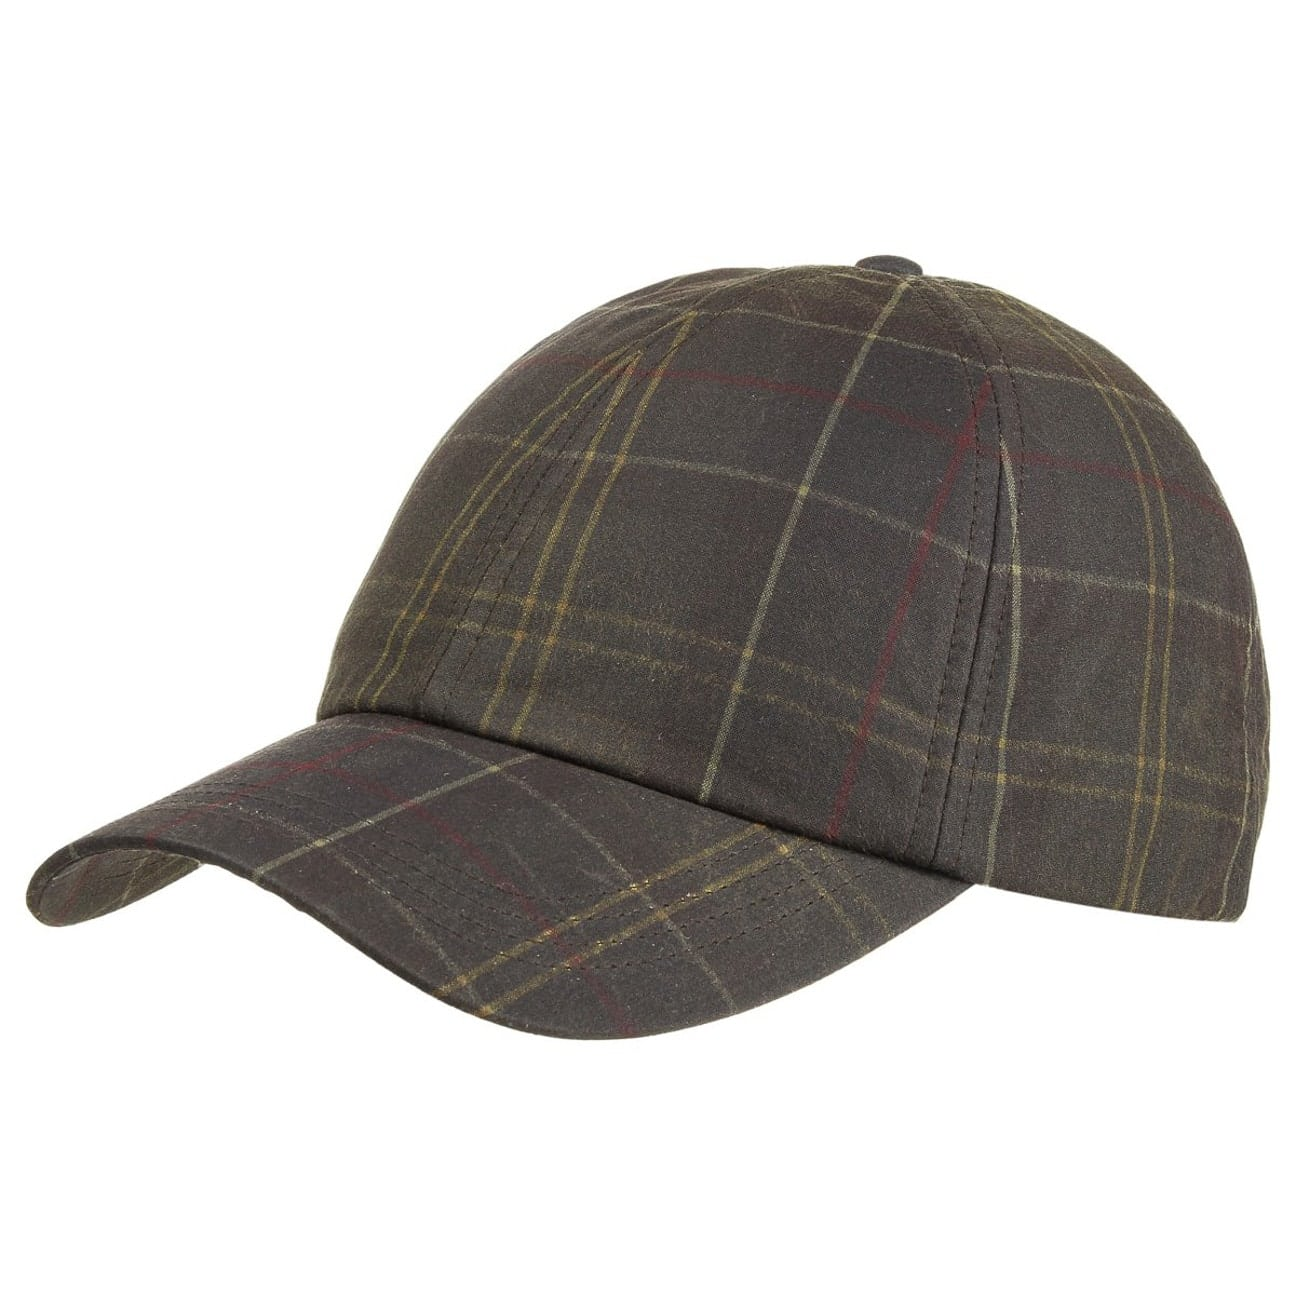 tartan-waxed-cotton-cap-by-barbour-baseballcap